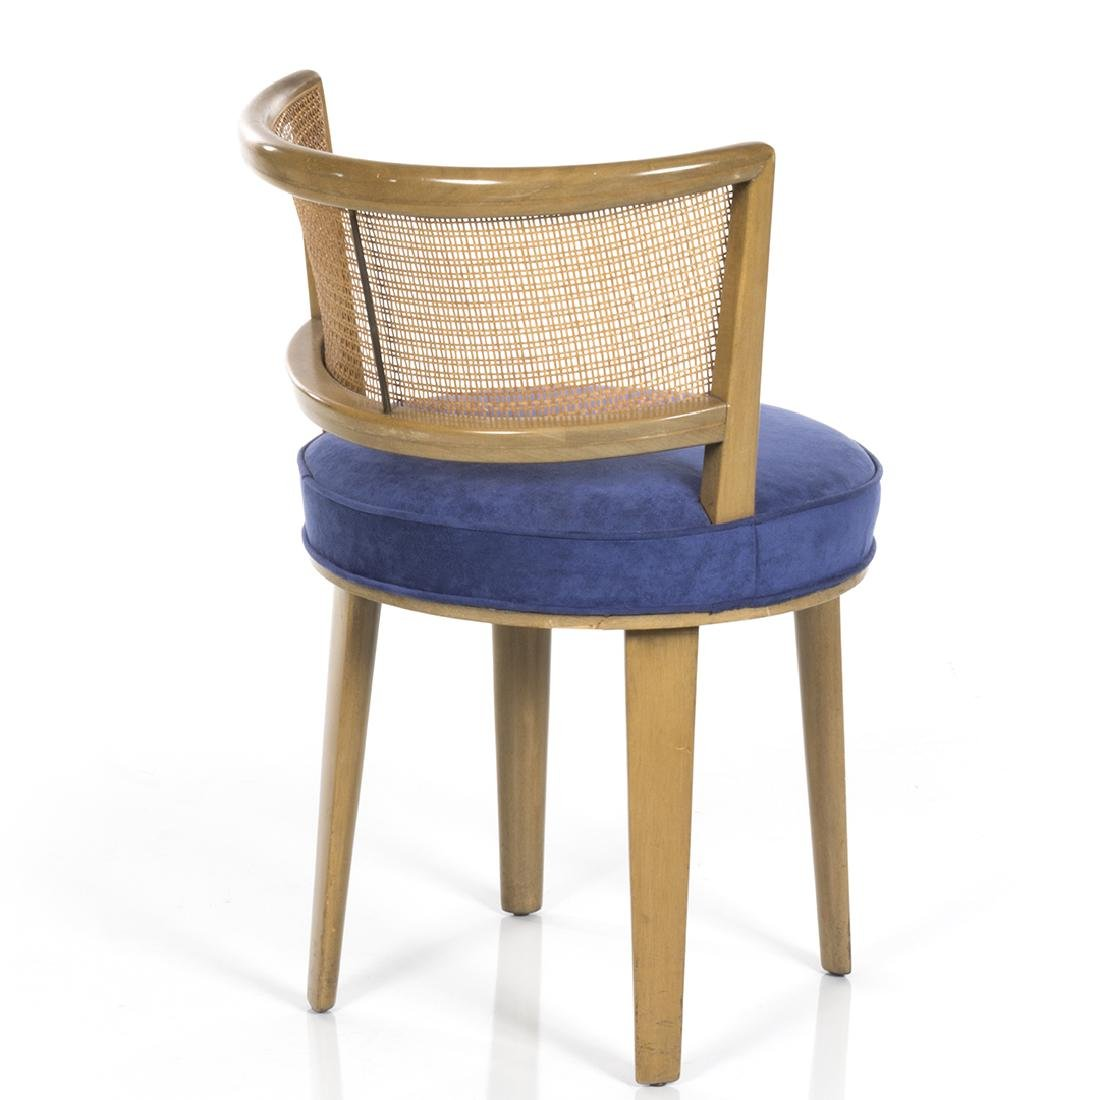 Edward Wormley Swivel Stool - 3